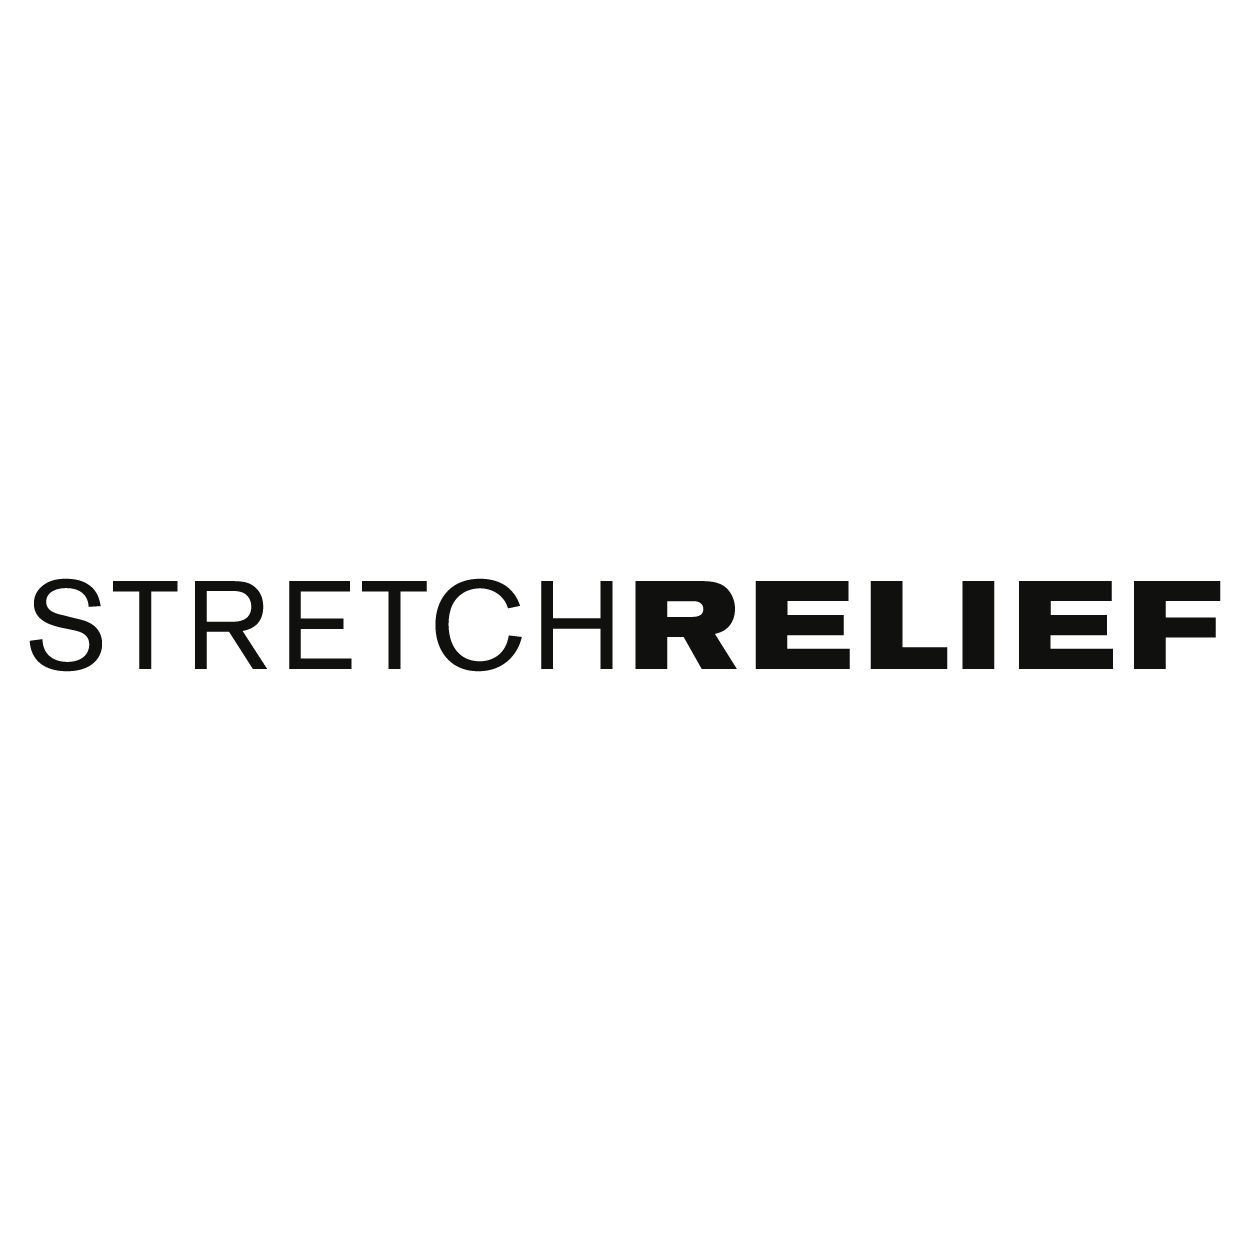 Stretch Relief